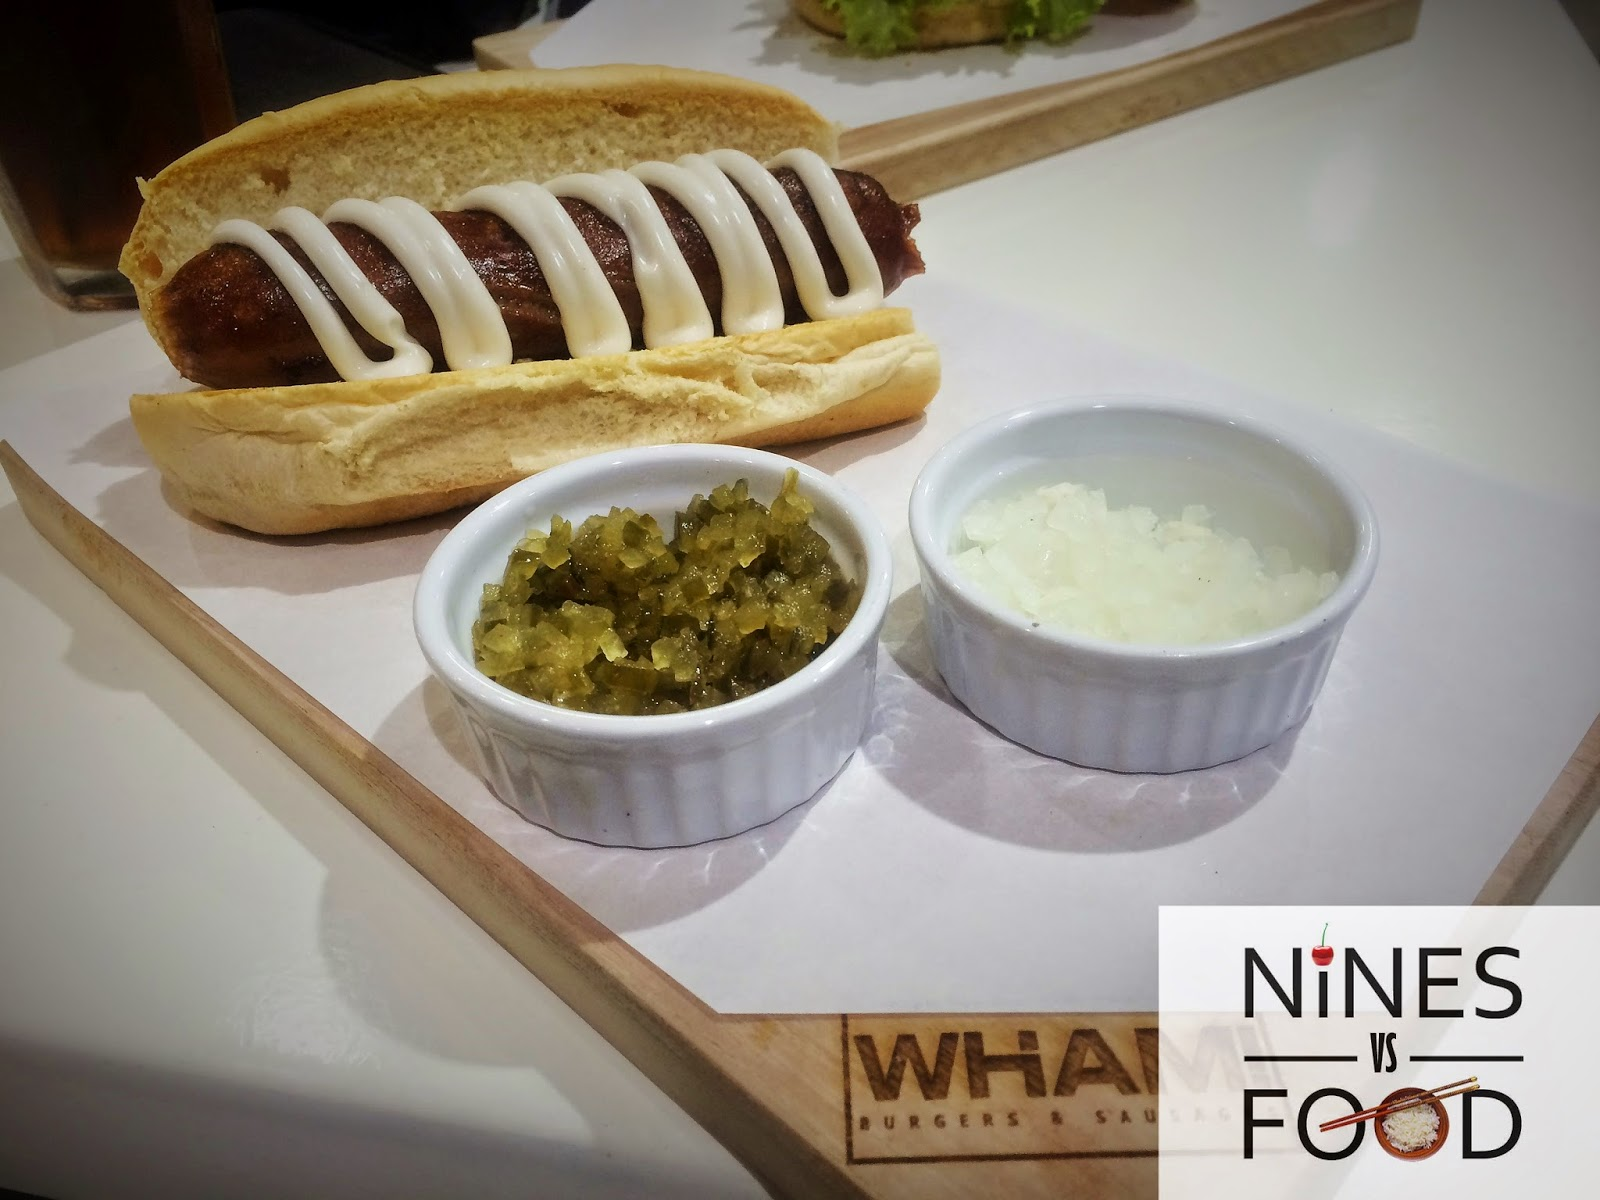 Nines vs Food - Wham! Burgers and Sausages-6.jpg